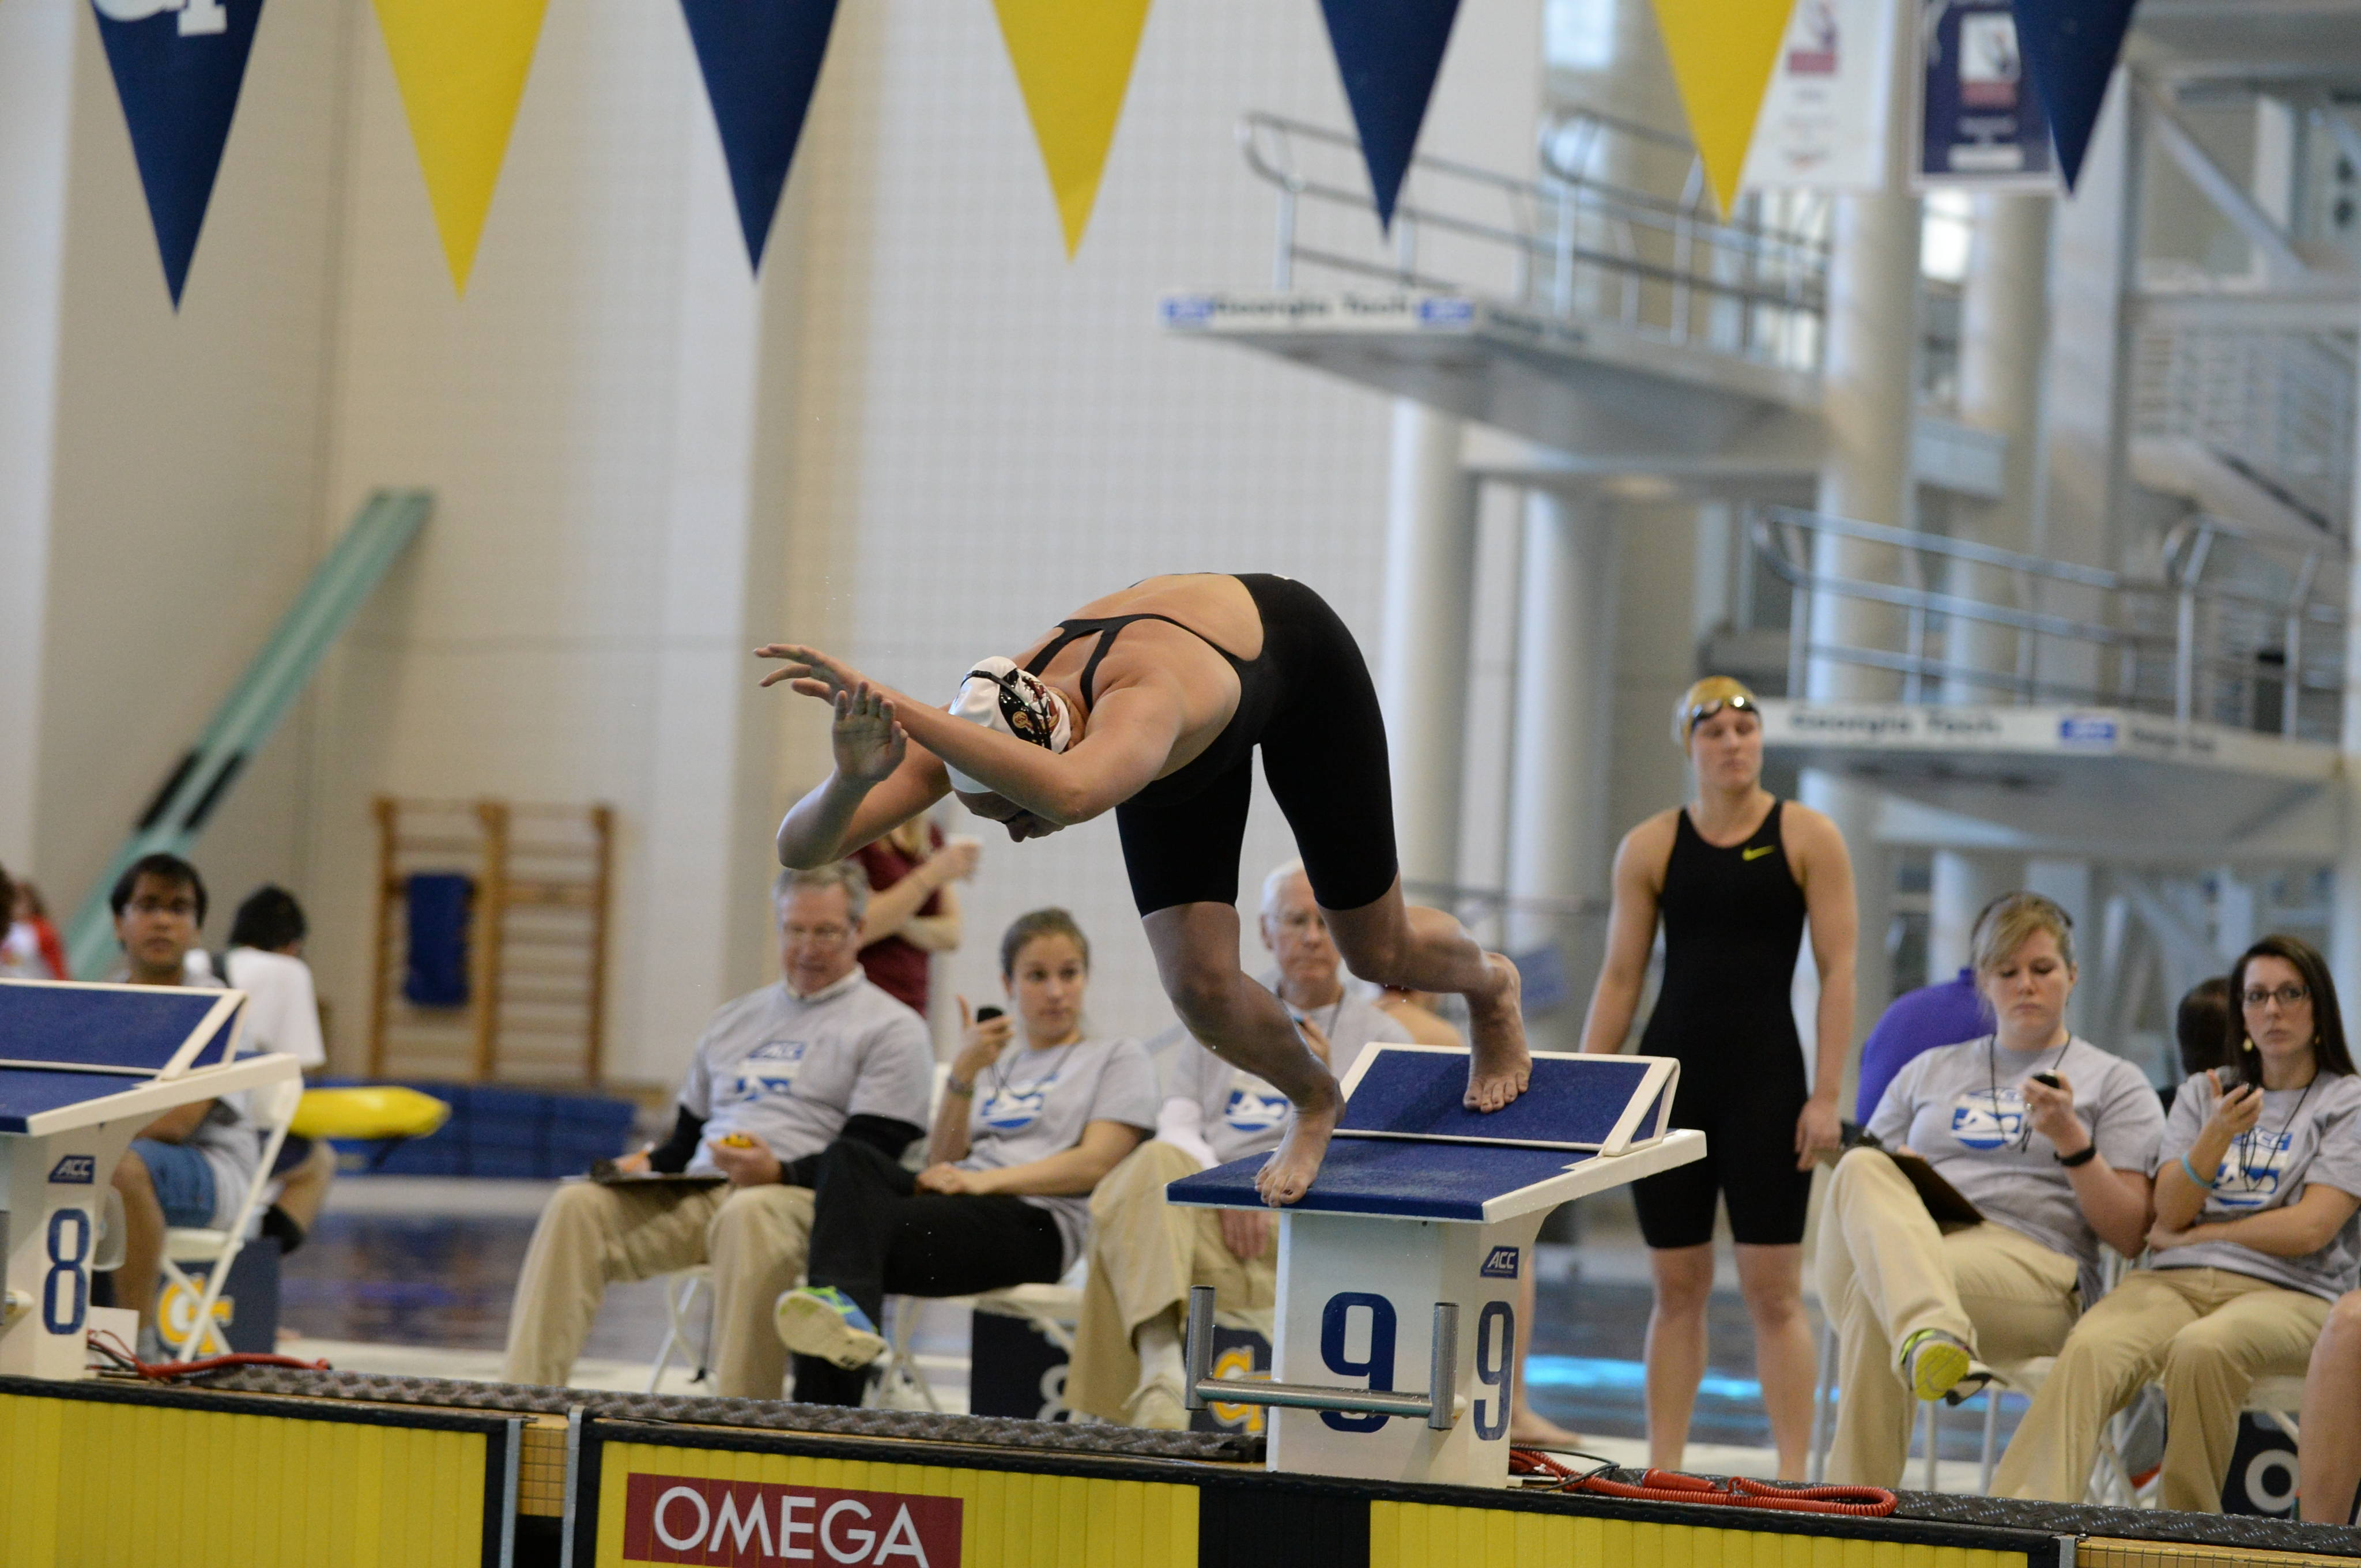 Kendall McIntosh at the start of the 500 free - Mitch White